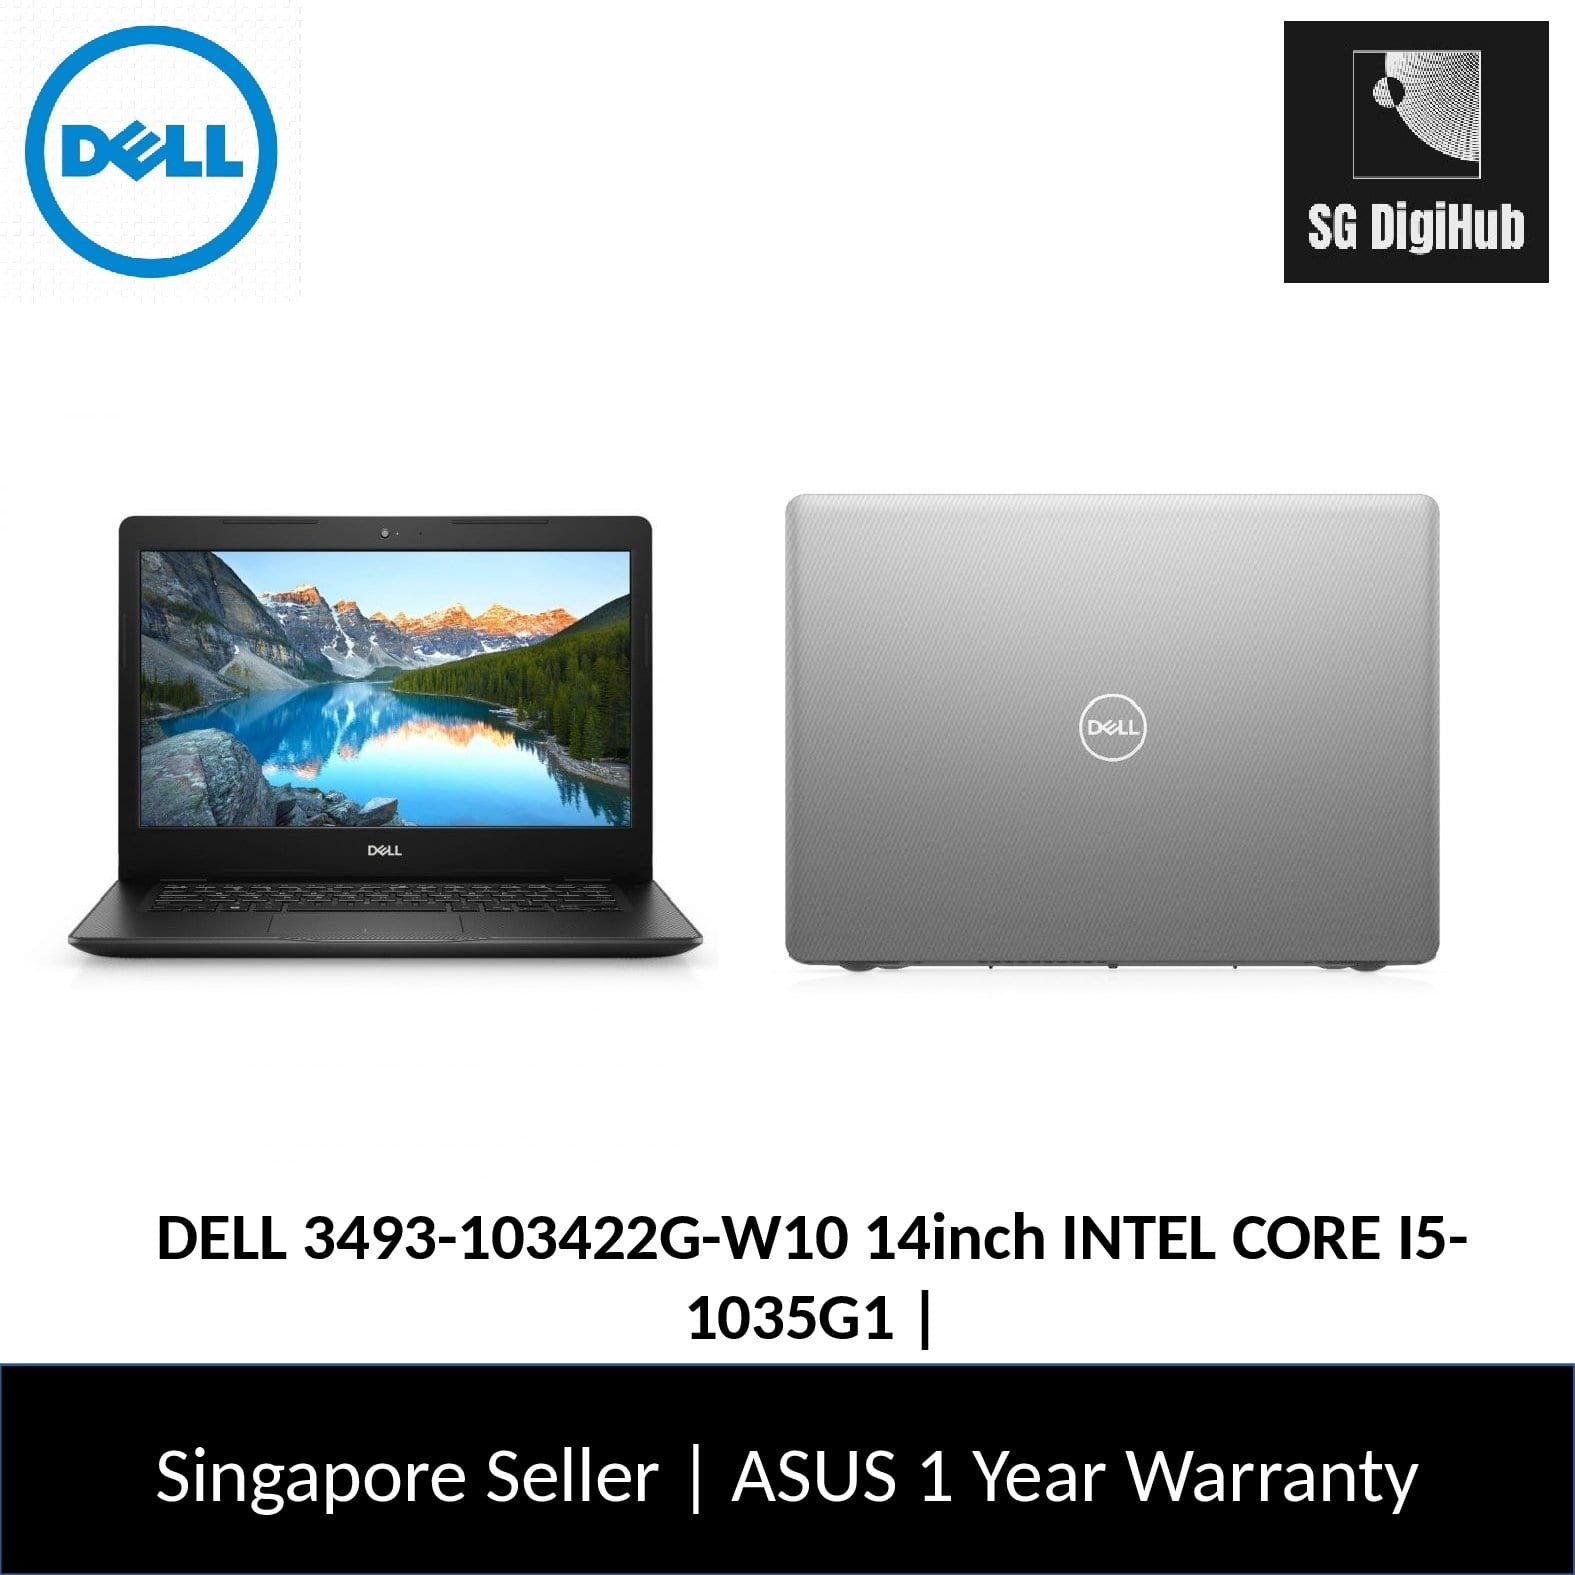 DELL 3493-103422G-W10 14inch INTEL CORE I5-1035G1 | 4GB | 256GB  SSD | WIN 10 | 1YR Warranty